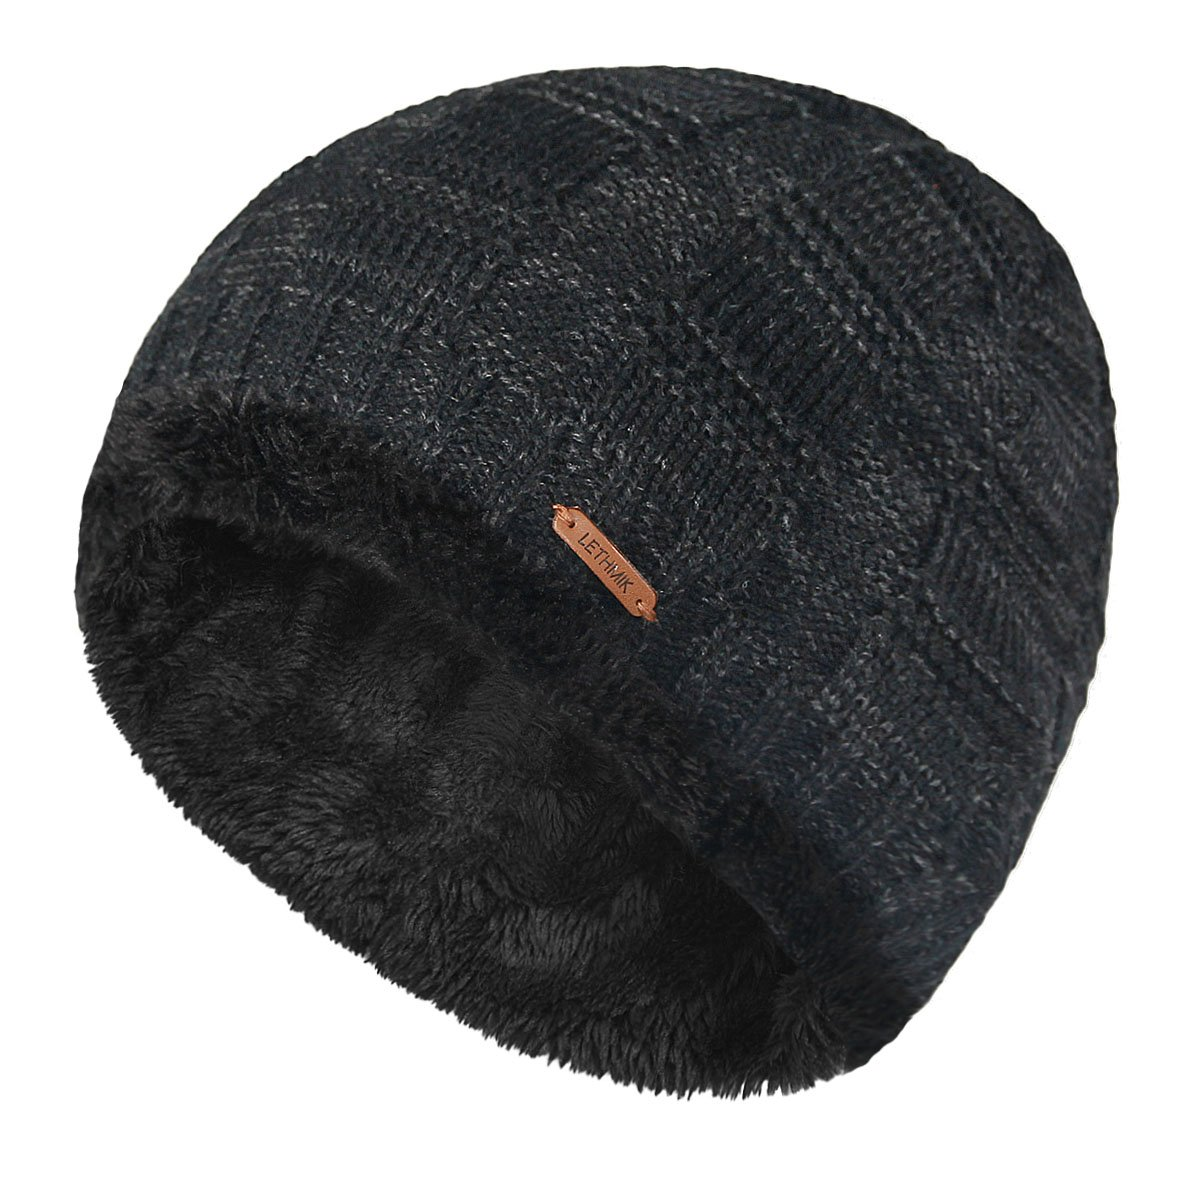 lethmik Unique Ribbed Knit Beanie Warm Thick Fleece Lined Hat Mens Winter Skull Cap skull beanie hat